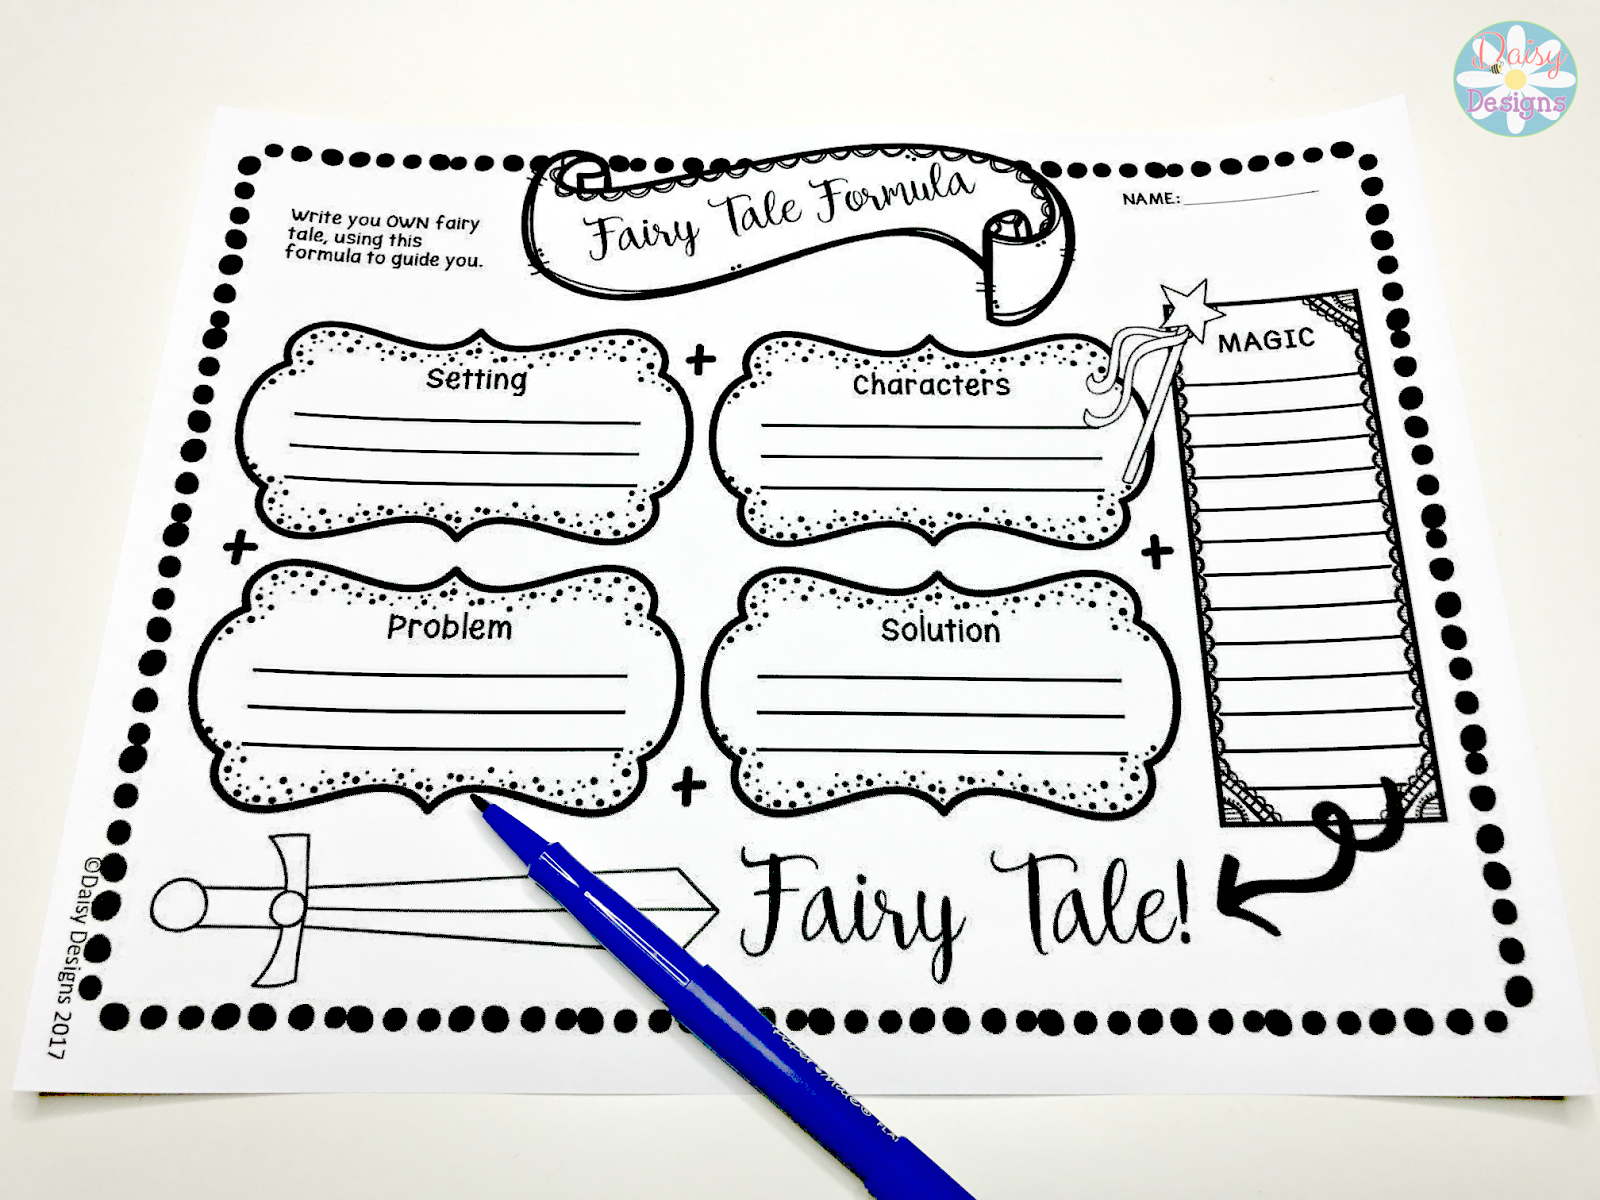 Daisy Designs: 7 Ways to Use Fairy Tales in the Classroom